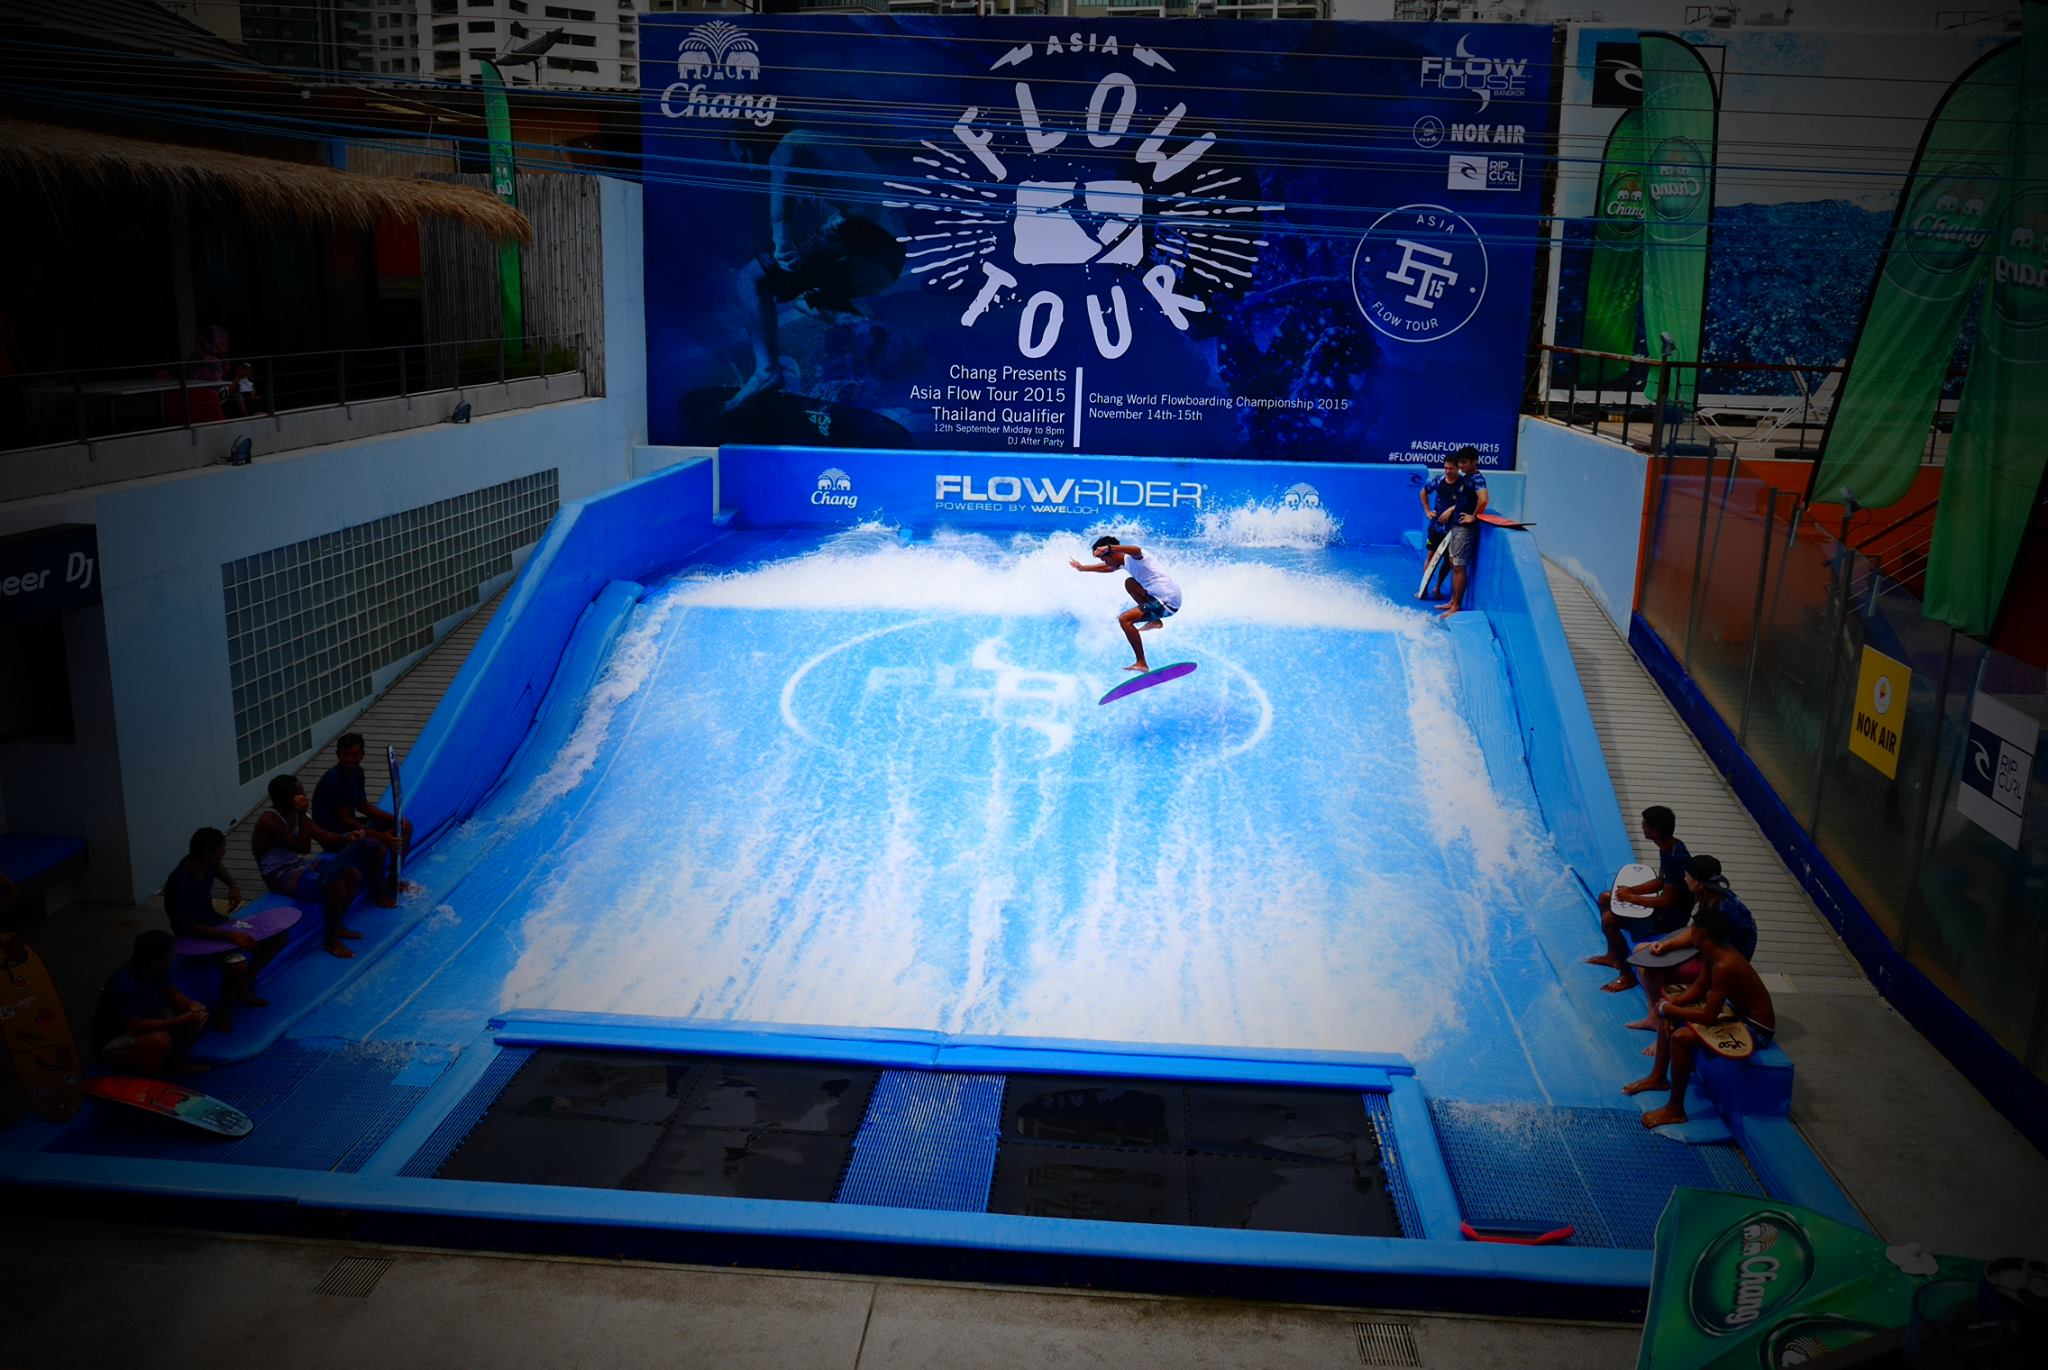 Flow Tour- World Flowboarding Championship 2015